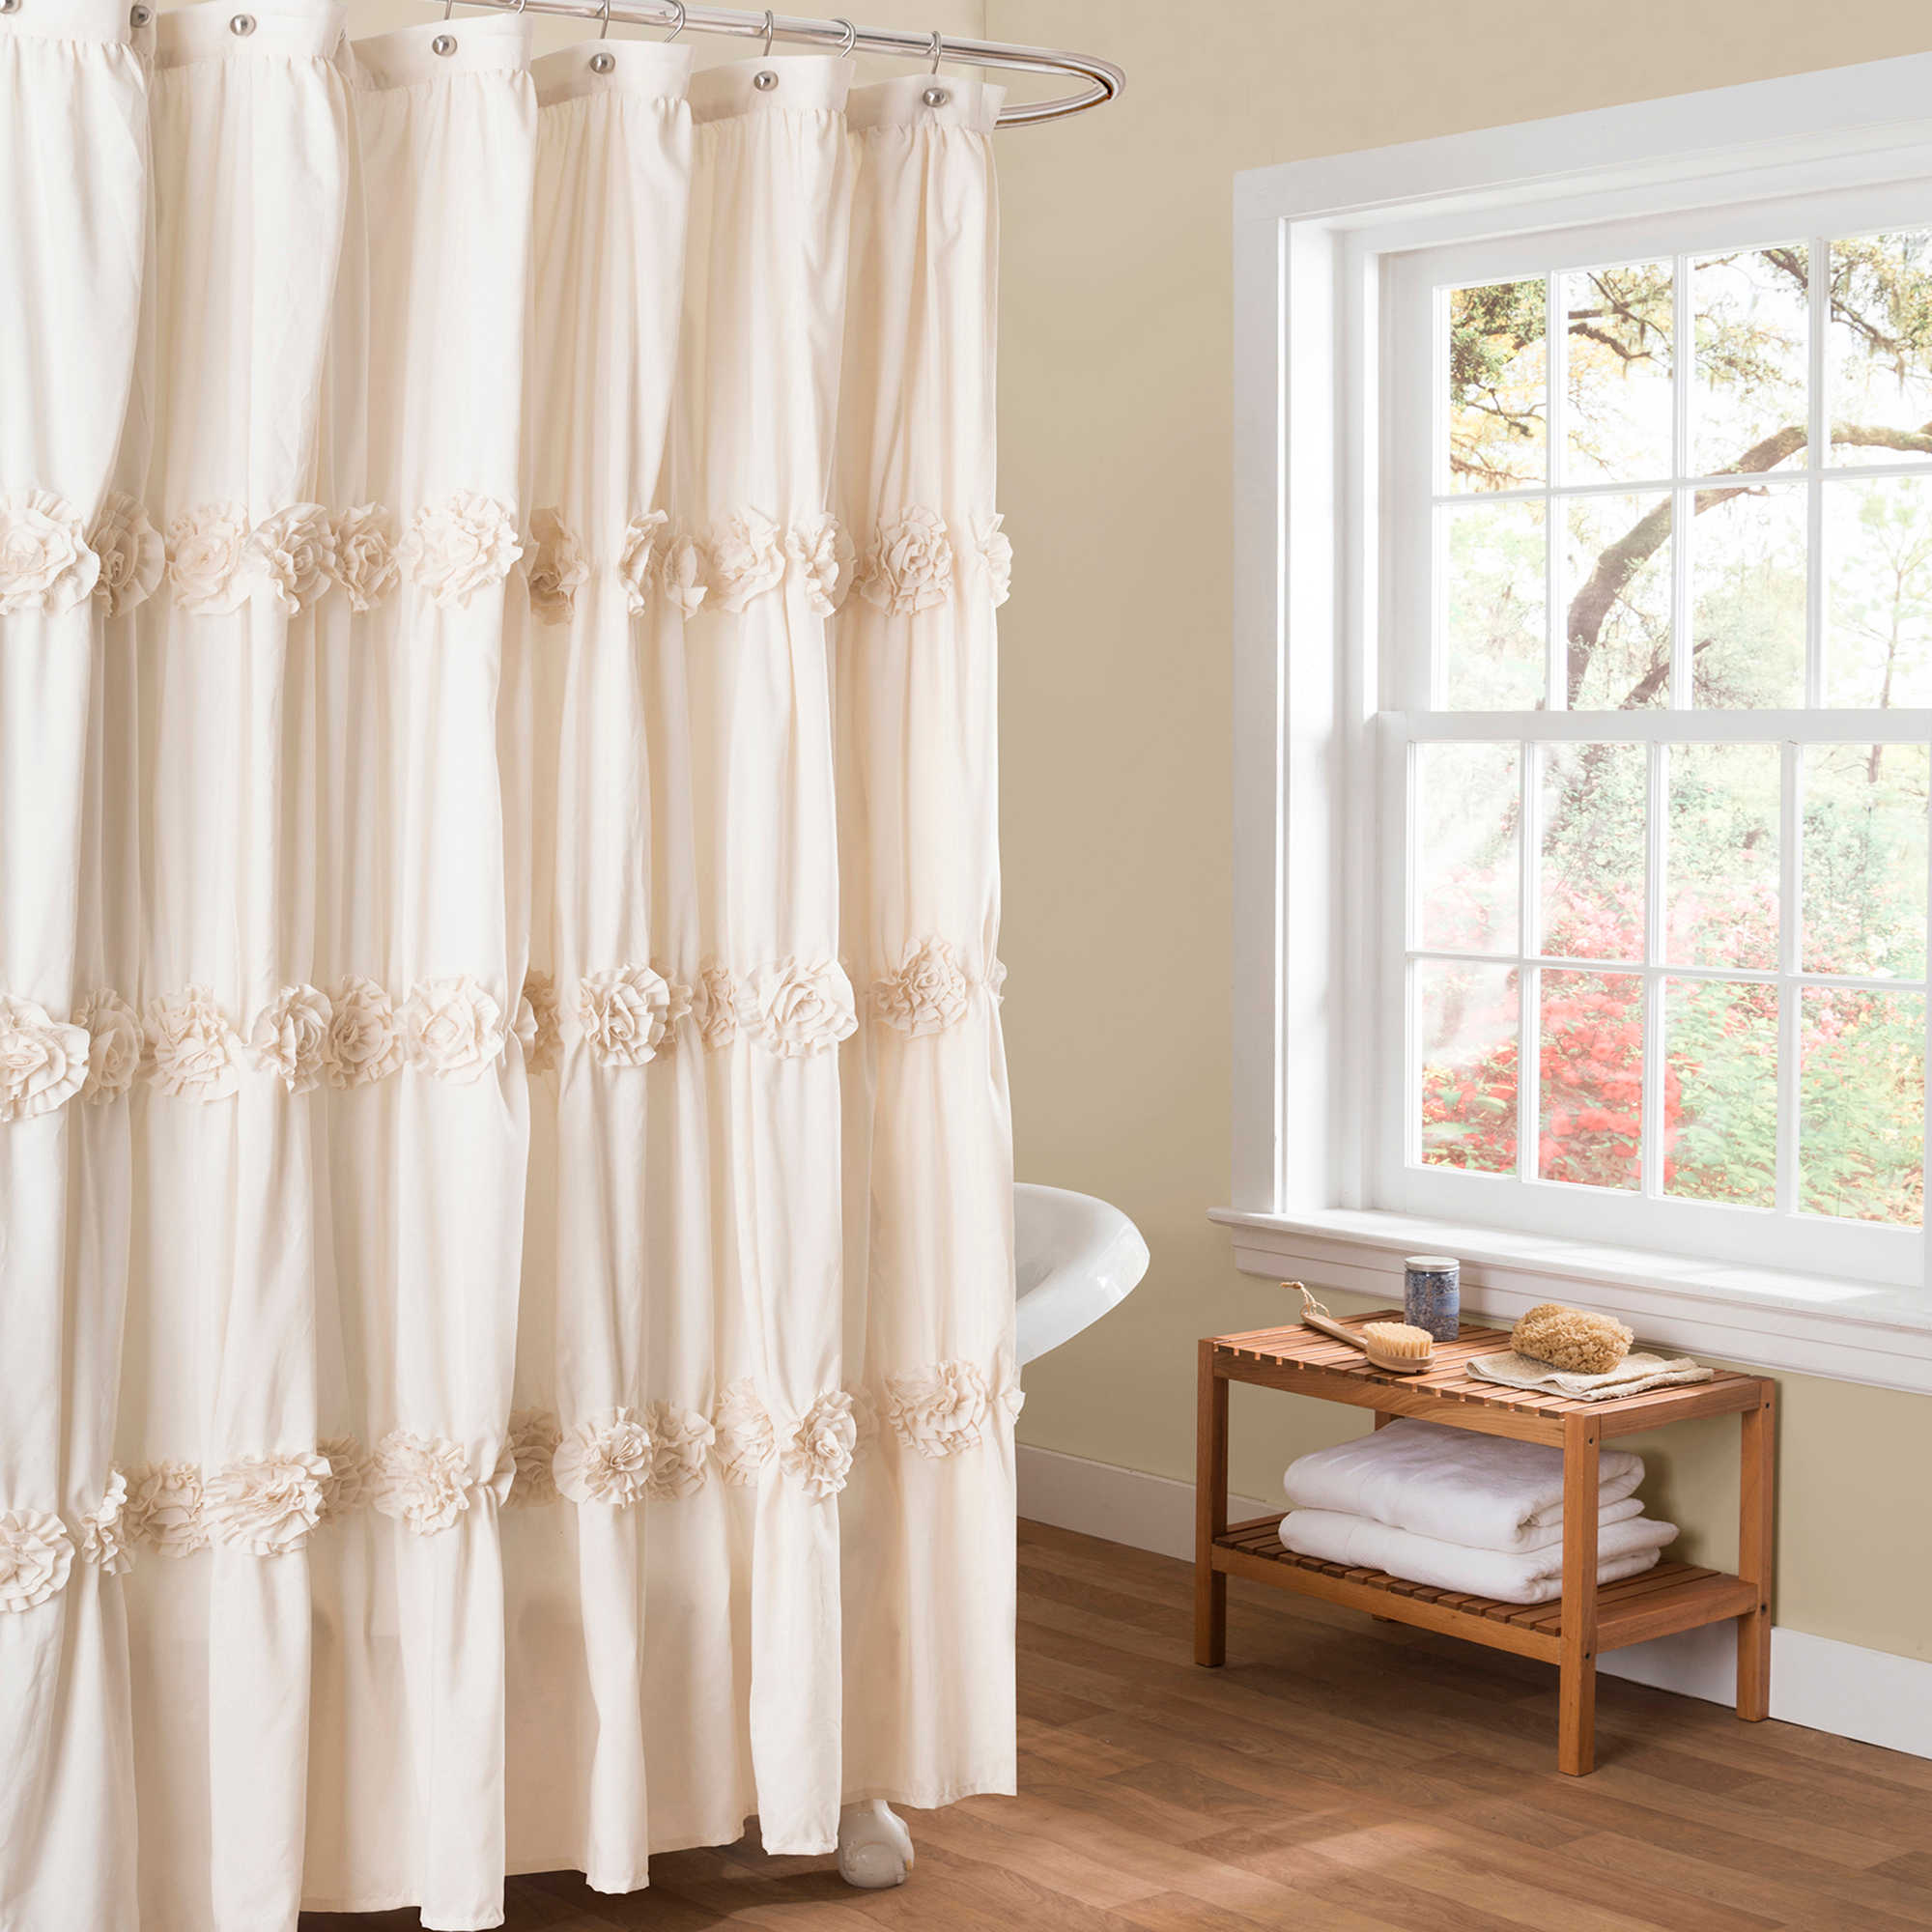 Shower Curtains: A Simple Home Hack Youll Love  Big Bathroom Shop